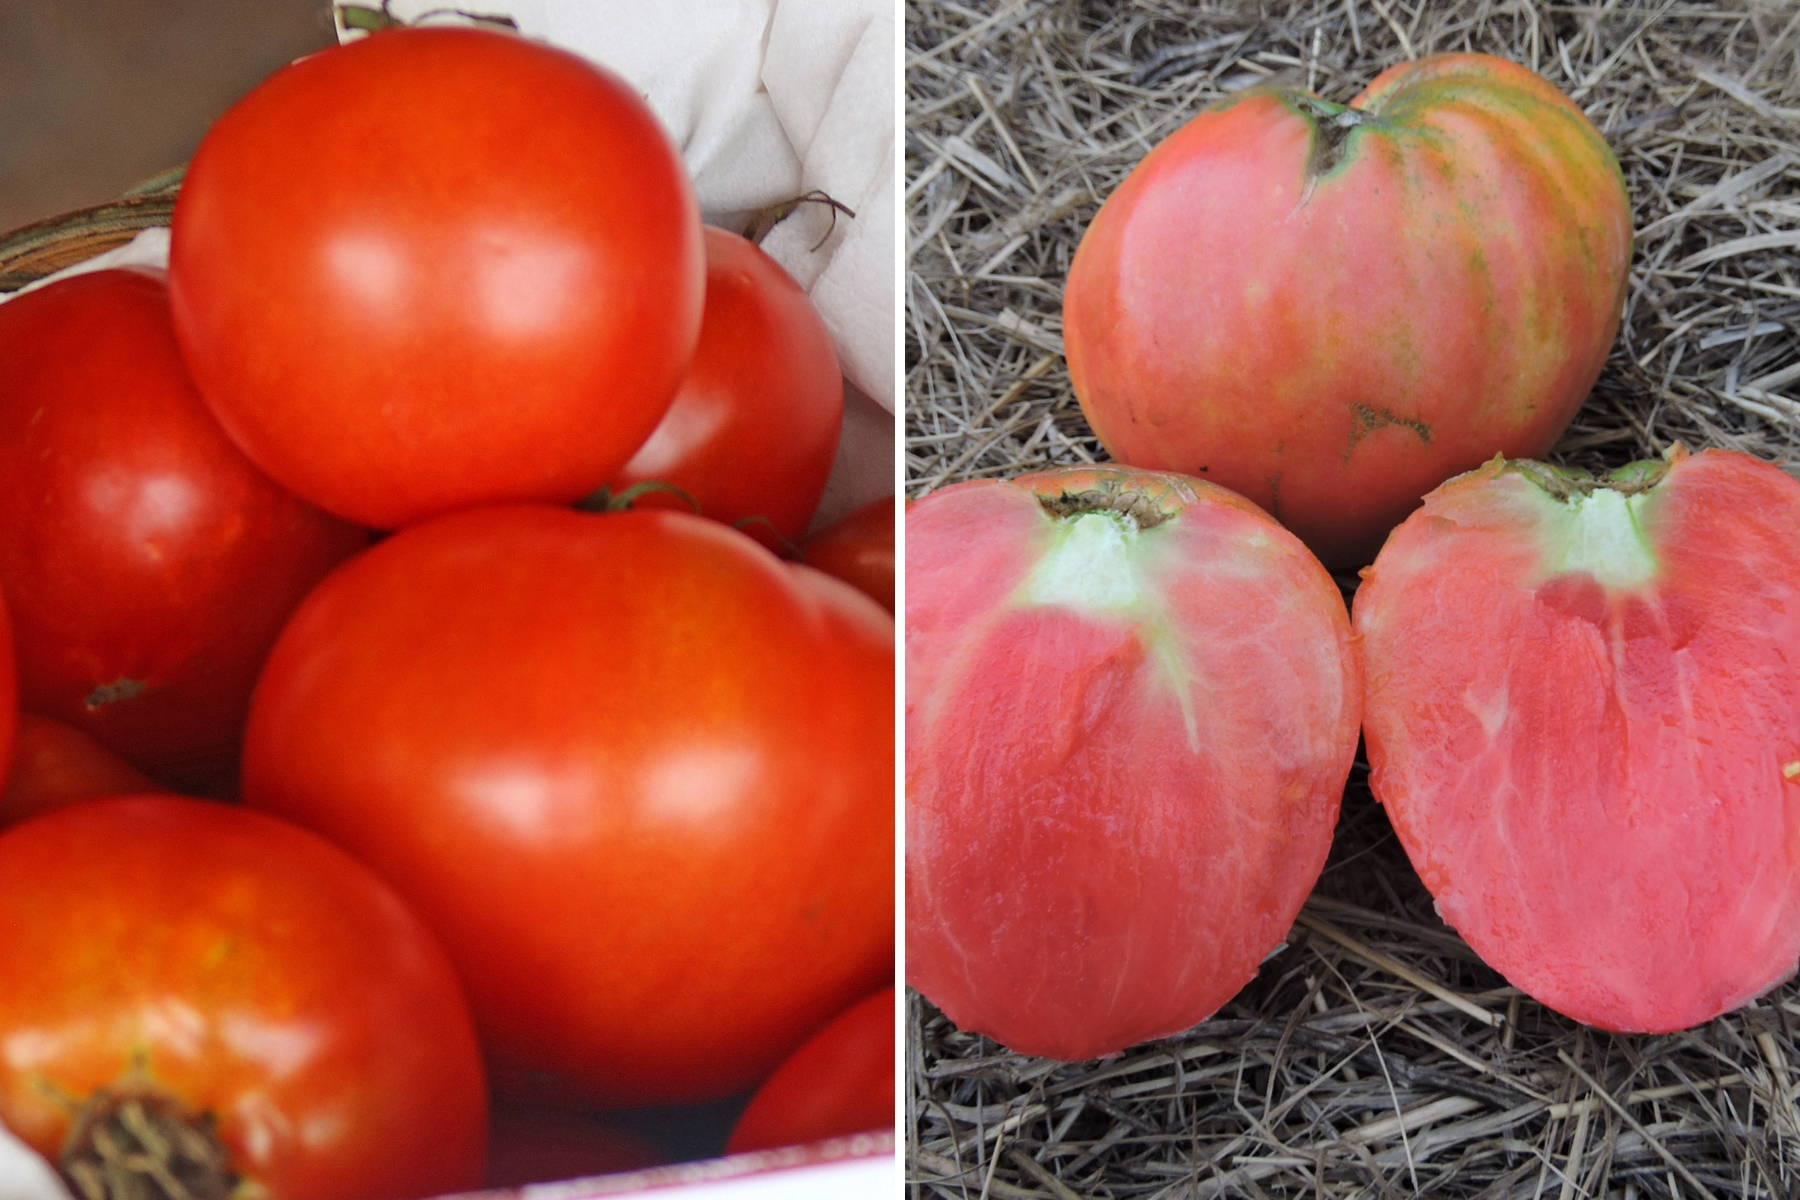 'Wisconsin Chief' Tomato (left) and 'Sterling Old Norway' (right).